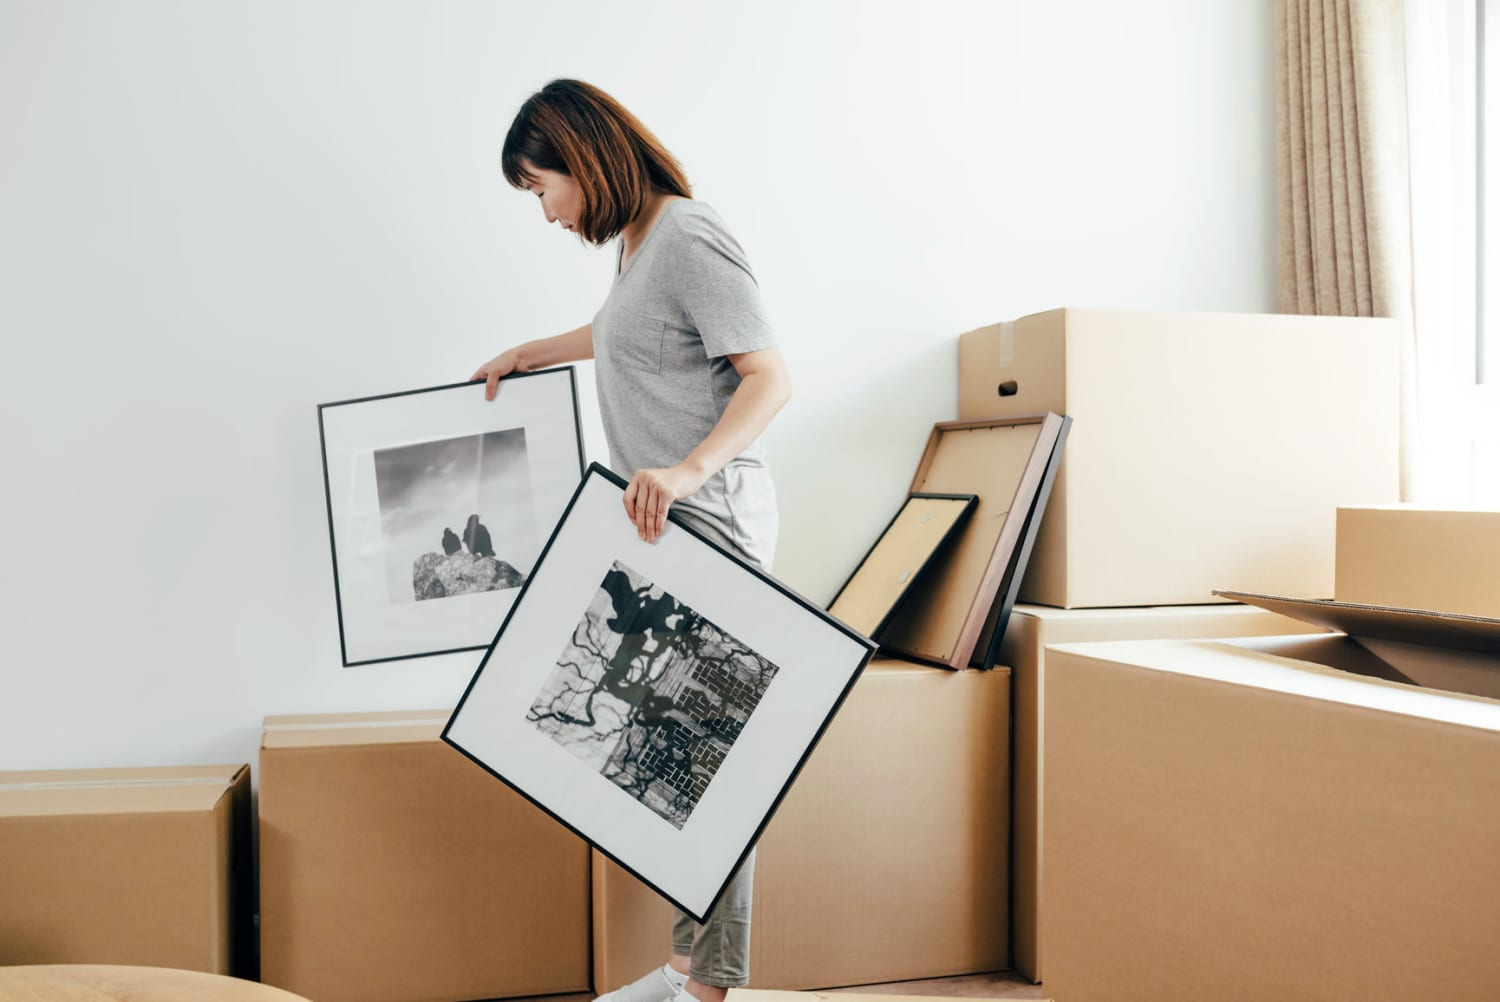 5 Ways to Save Money on Your Next Move, According to Real Estate Pros